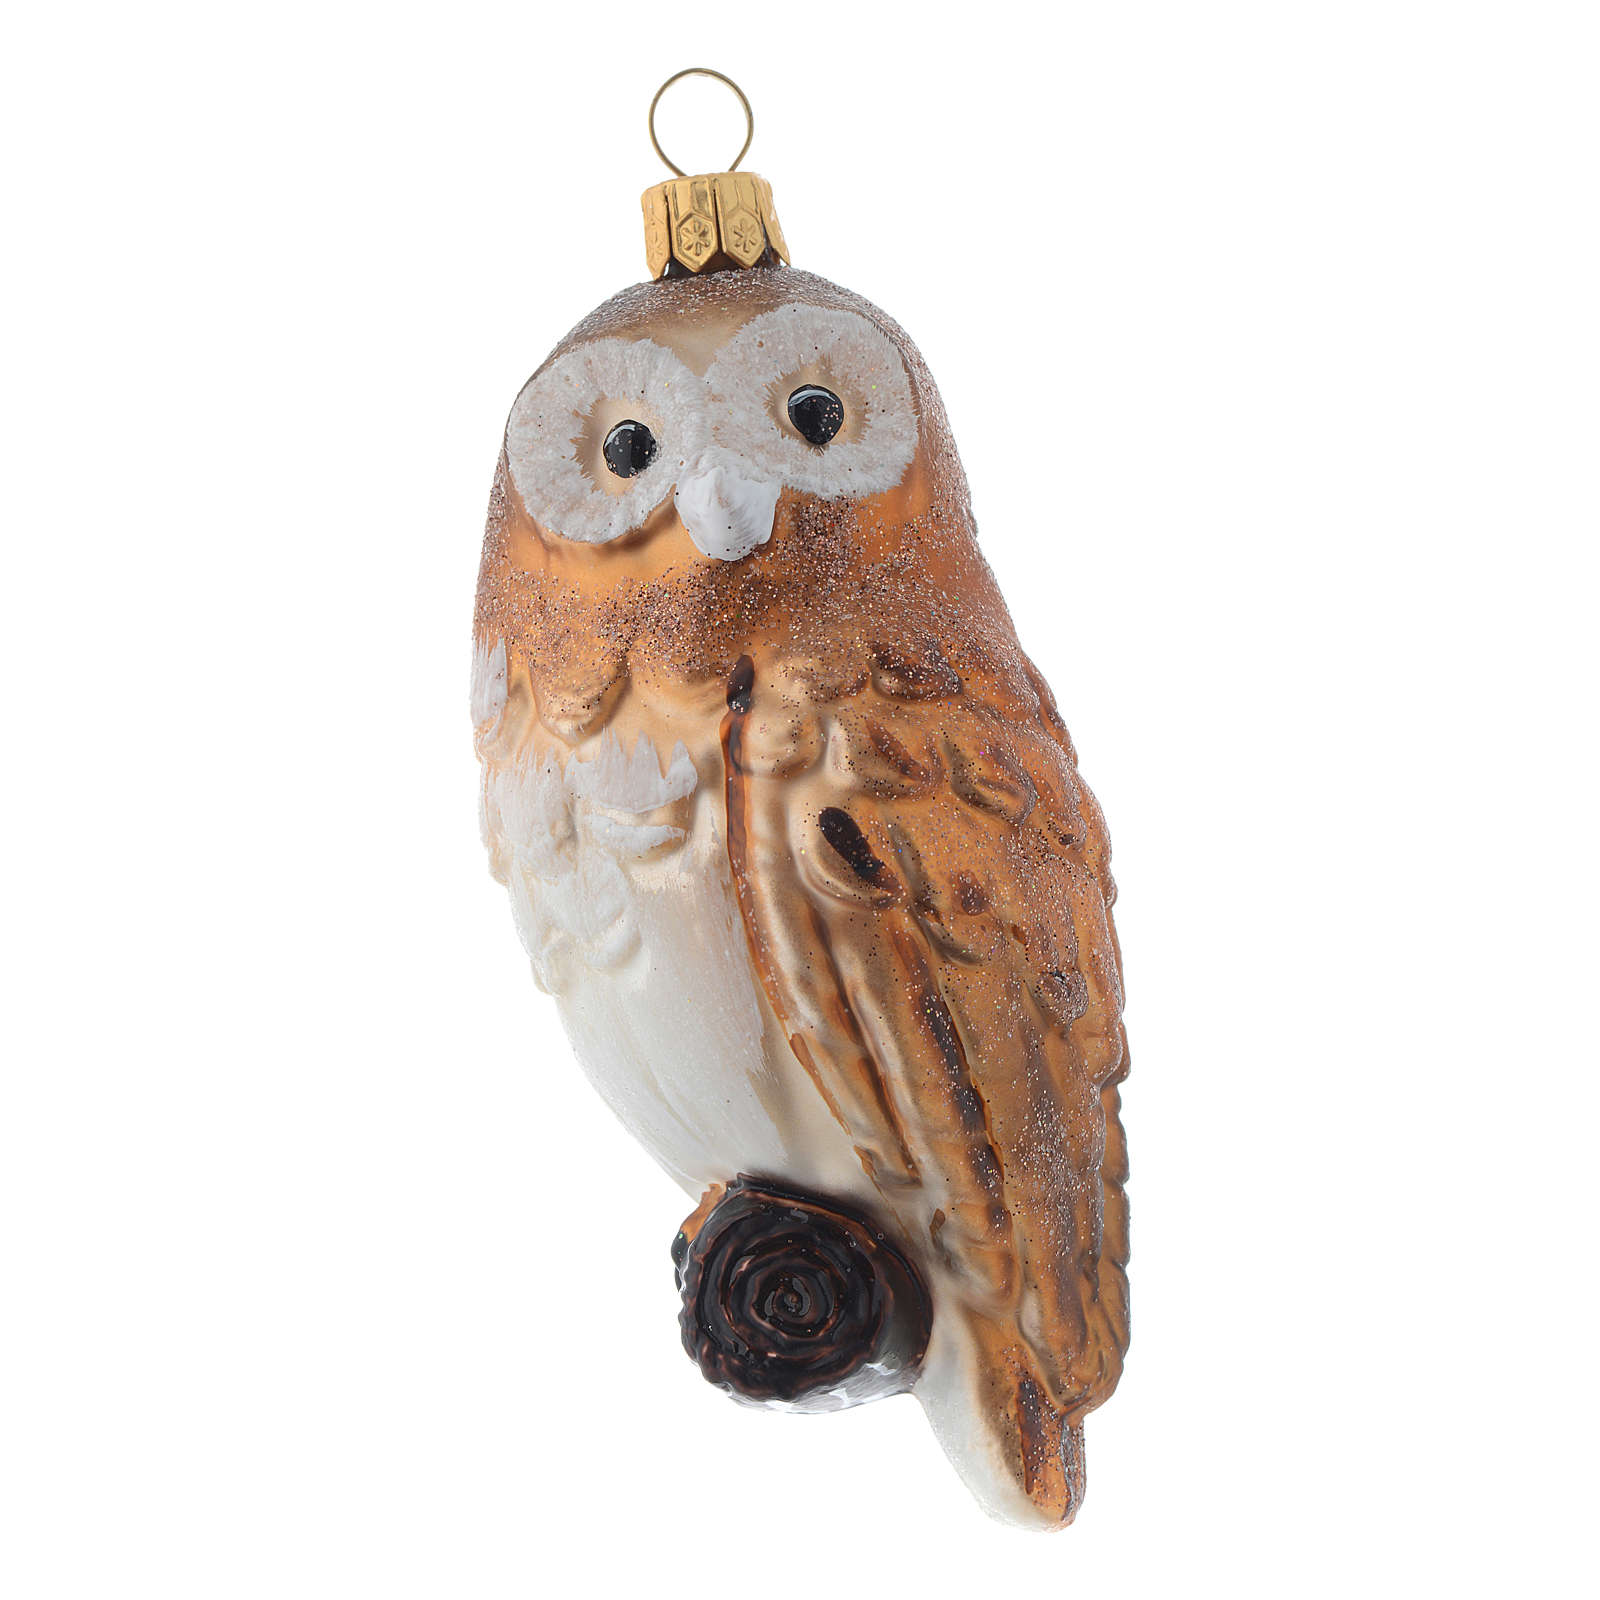 Blown glass Christmas ornament, owl 4